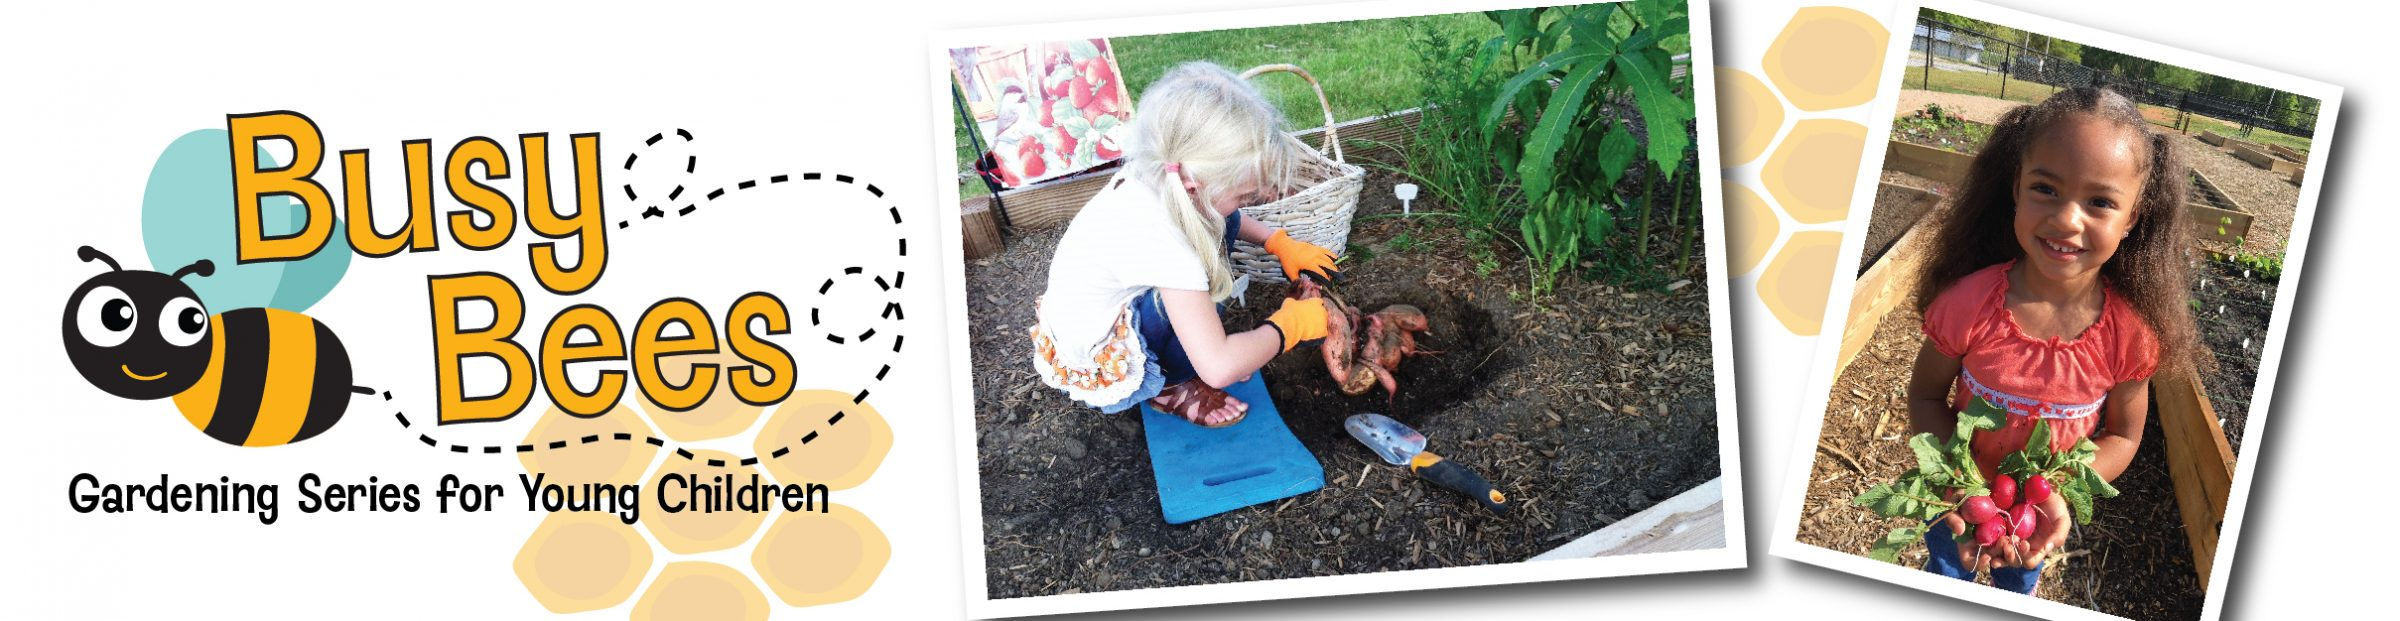 Busy Bees Gardening Series for Young Children